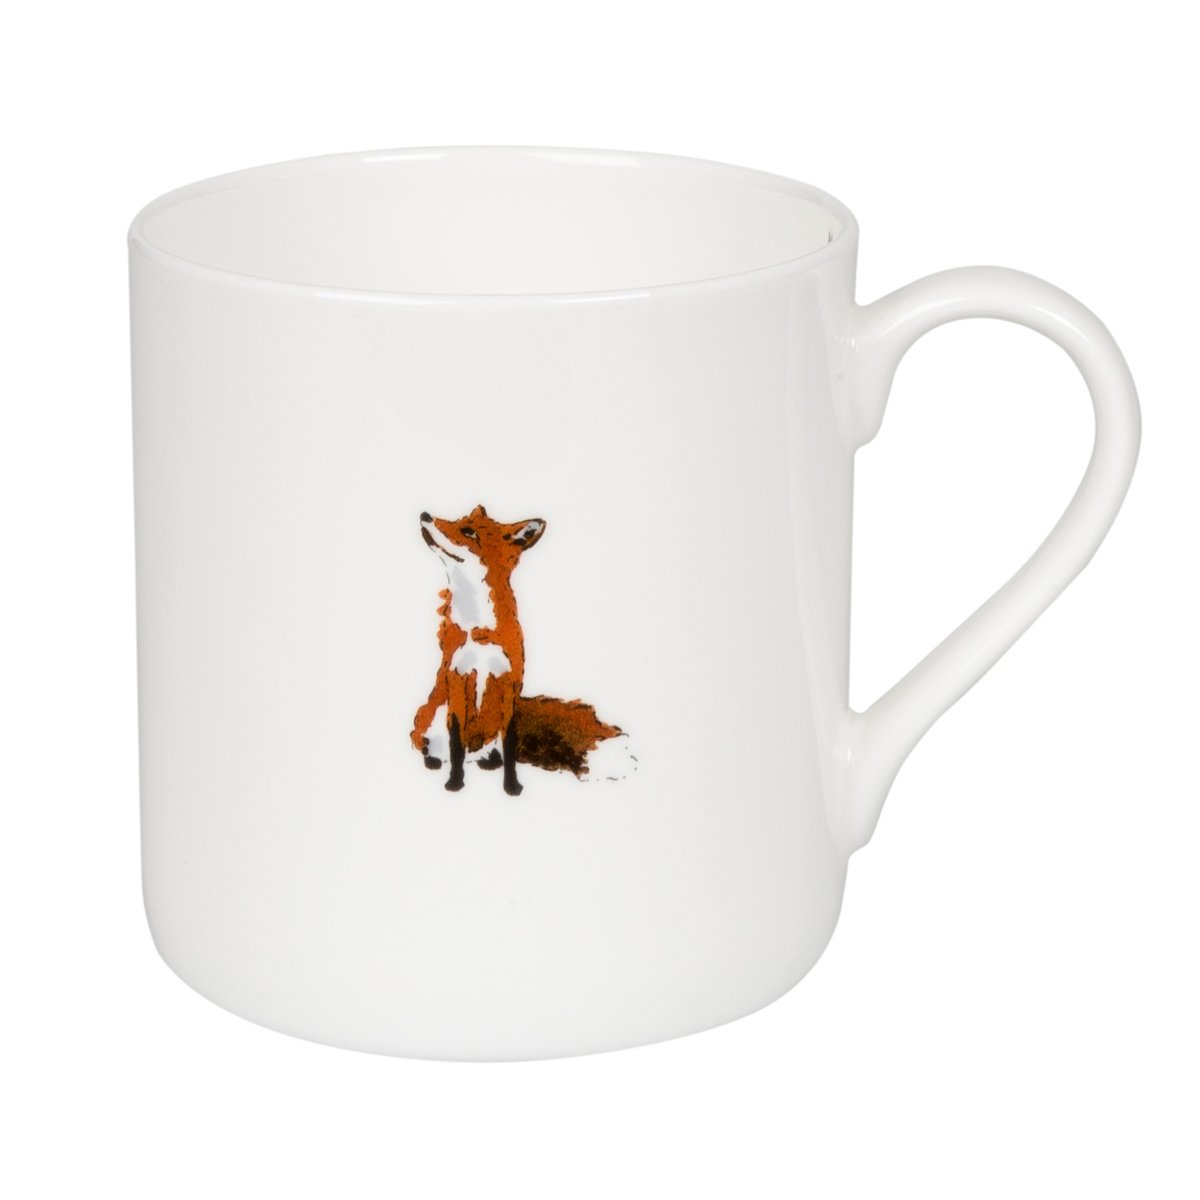 Foxes Solo Mug